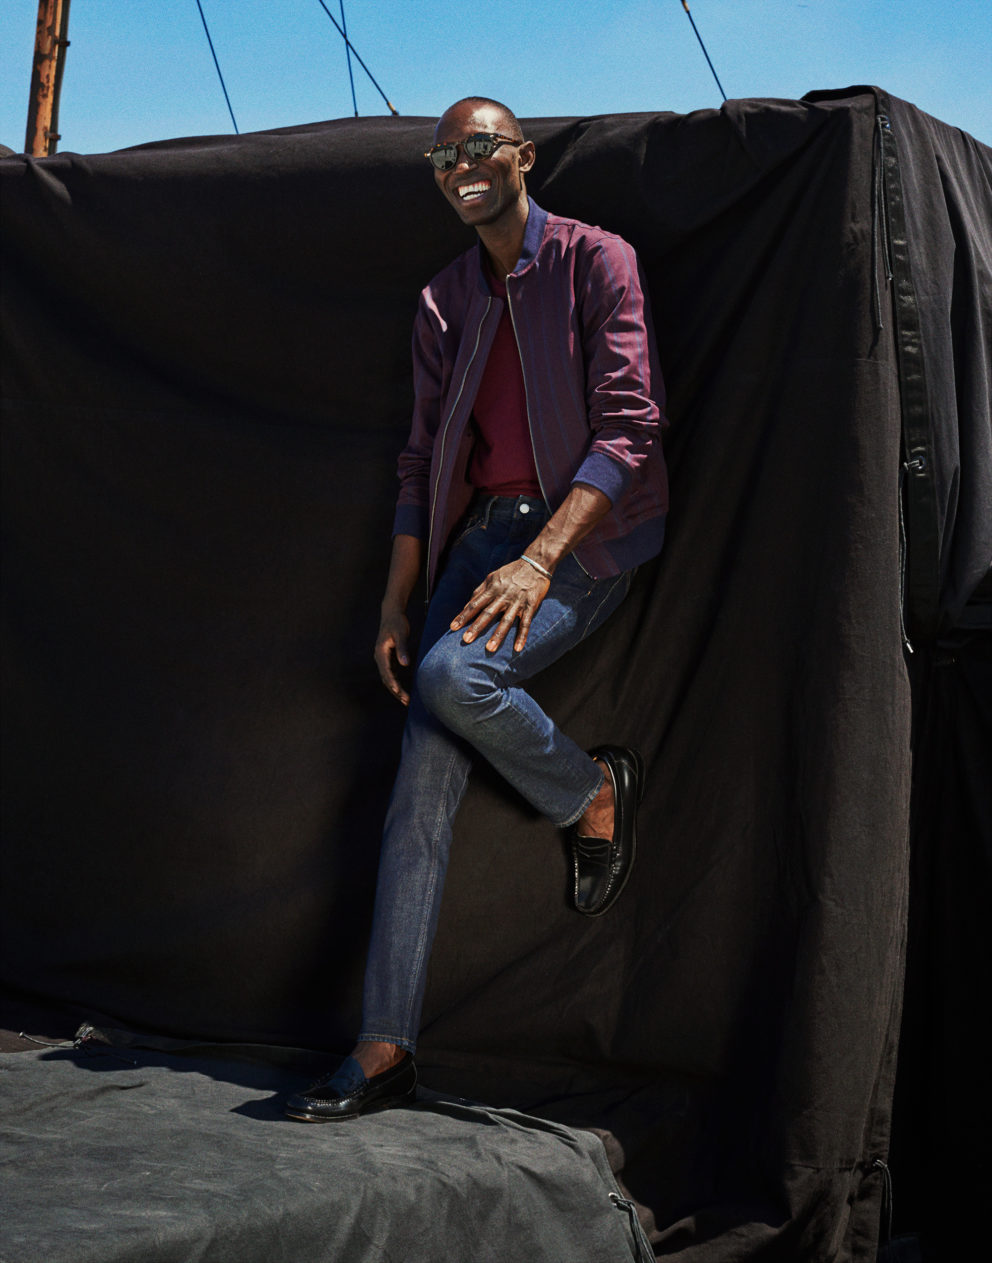 190626 0050 Bonobos Denim And Styleguide Armando Cabral 049